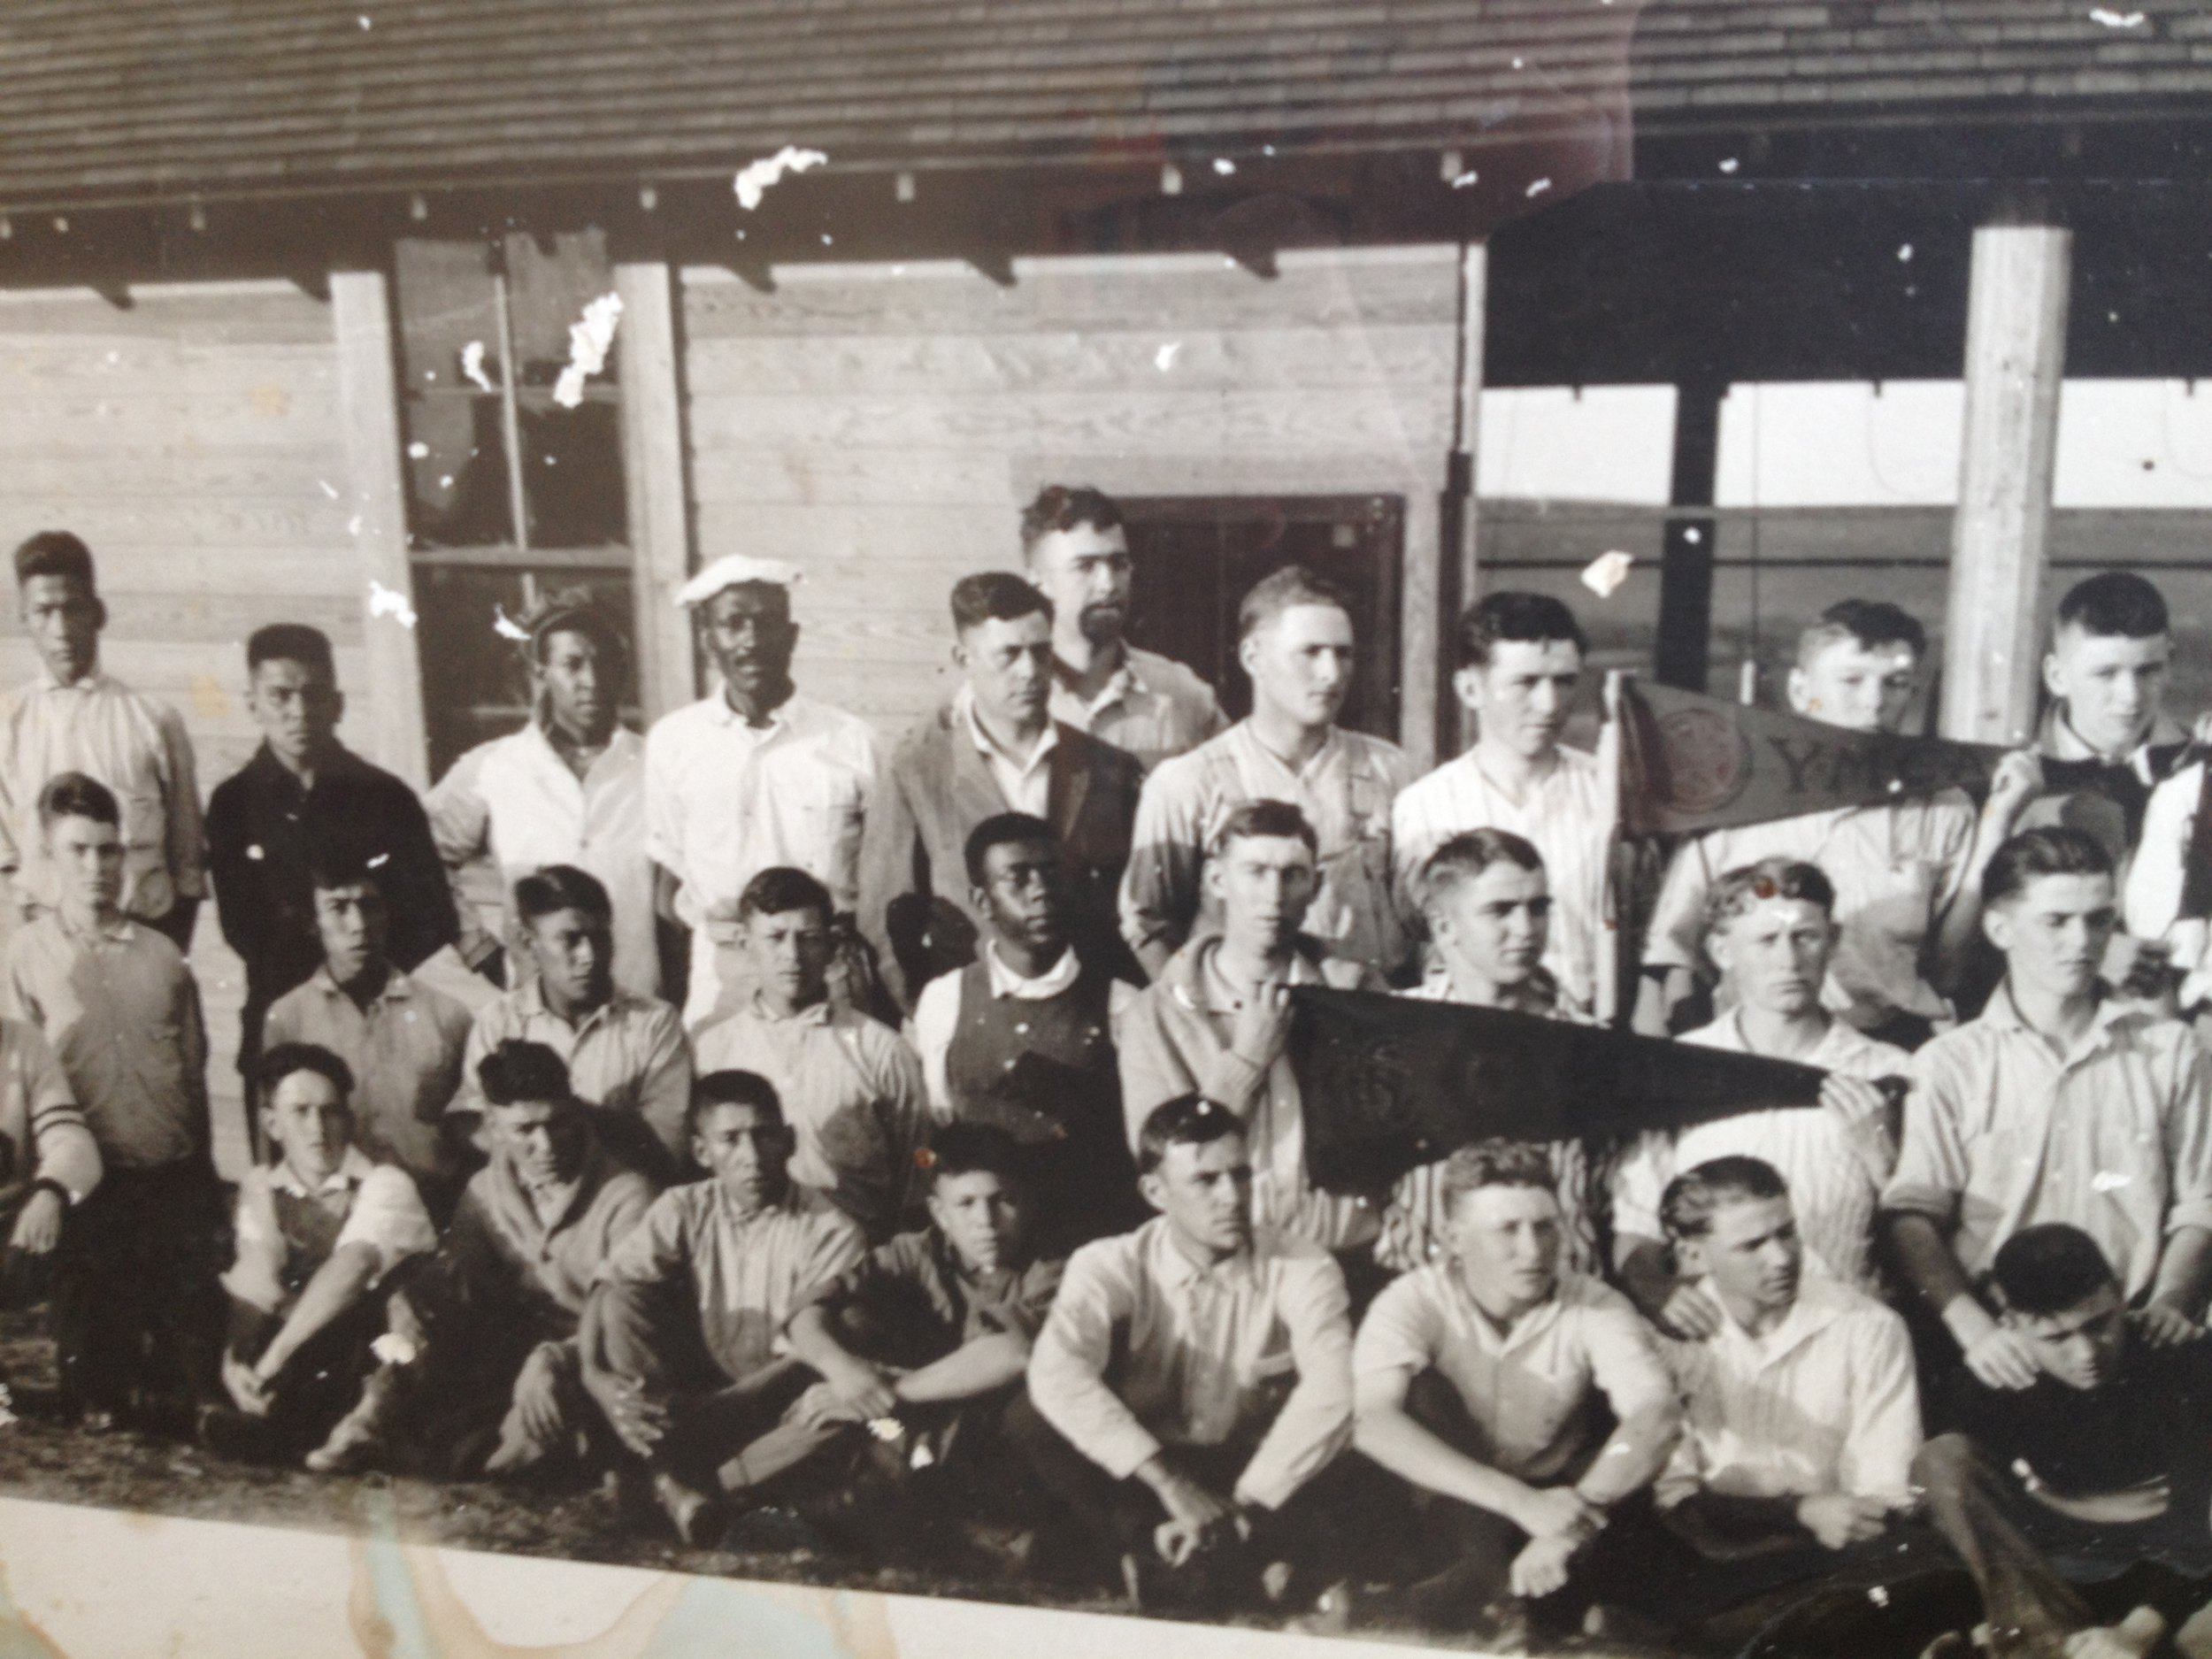 Diversity has been a part of Camp Wood YMCA's story since our very first summer camp session in 1916.